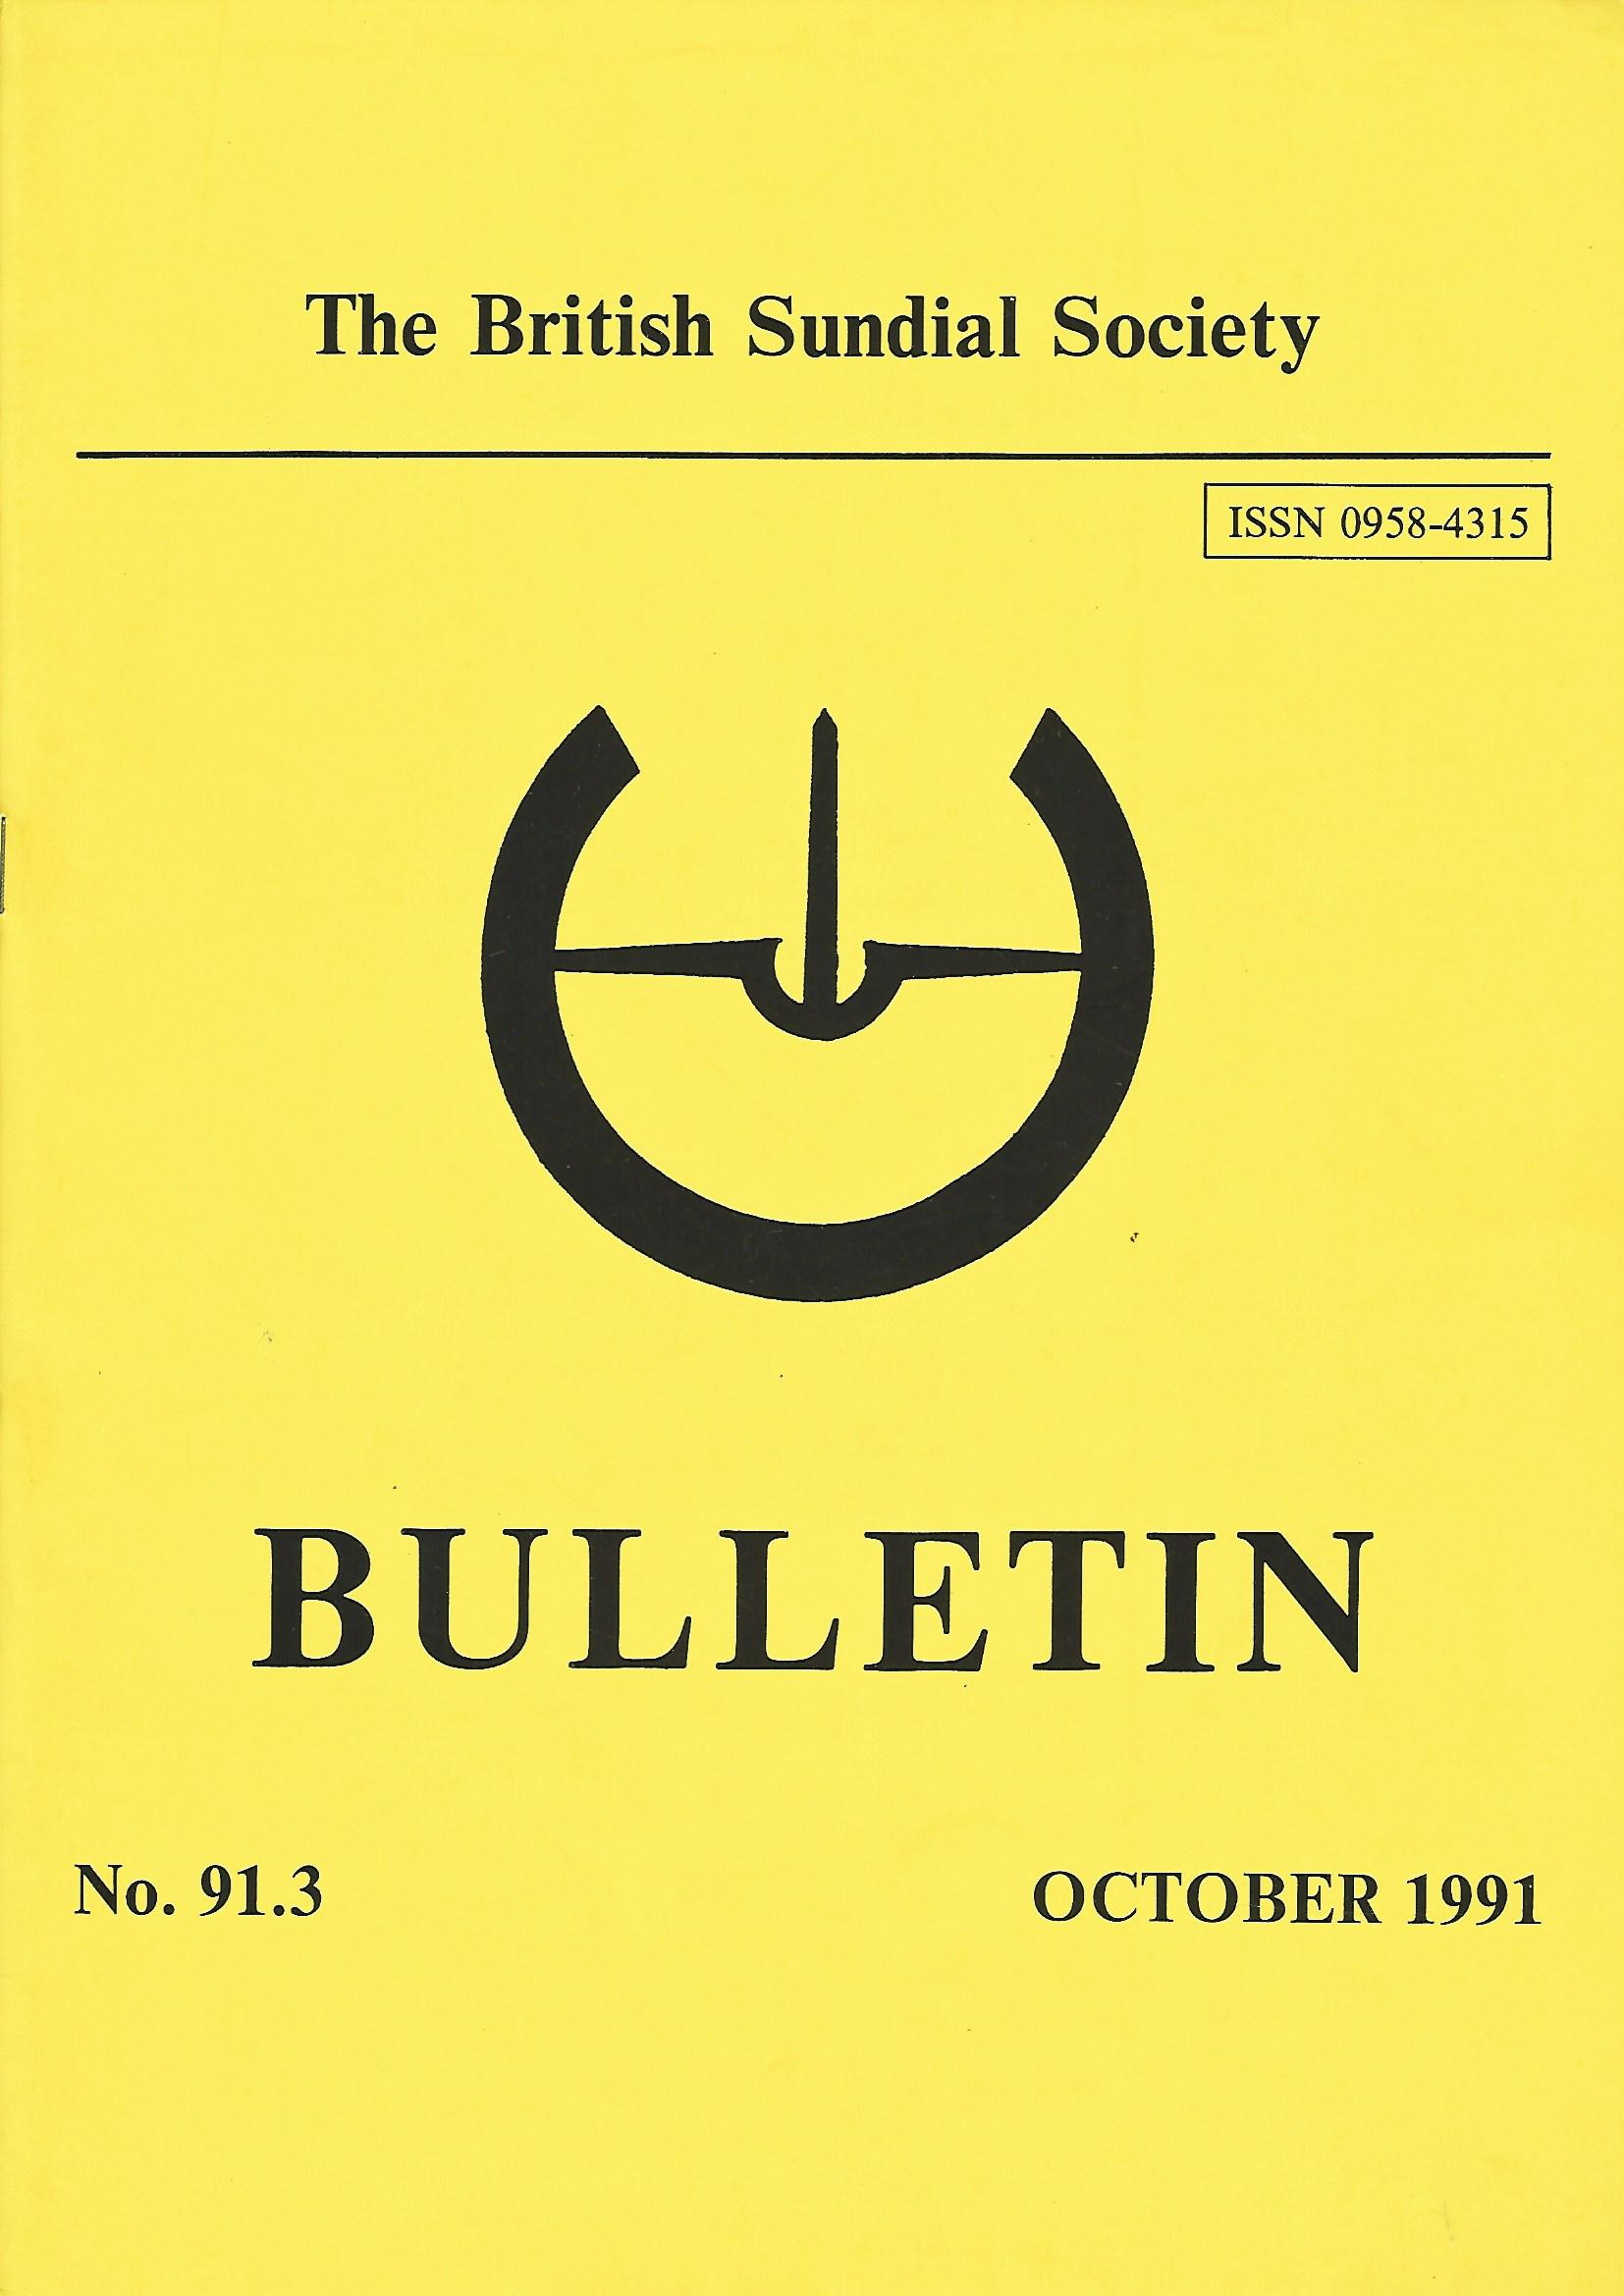 Image for The British Sundial Society Bulletin No. 91.3, October 1991.